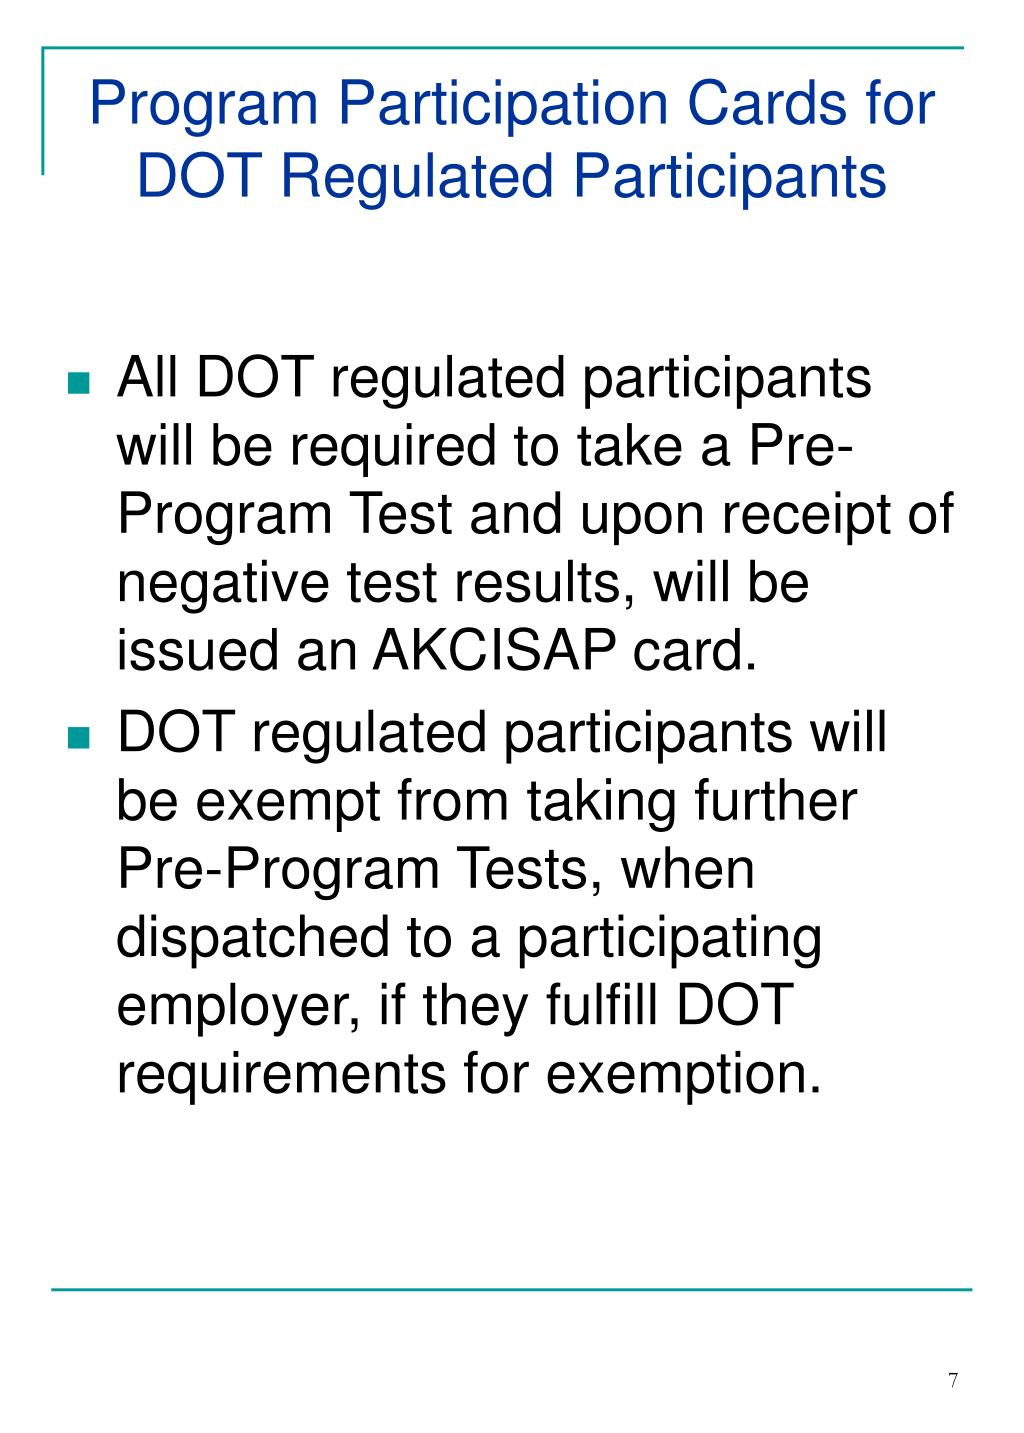 Program Participation Cards for DOT Regulated Participants